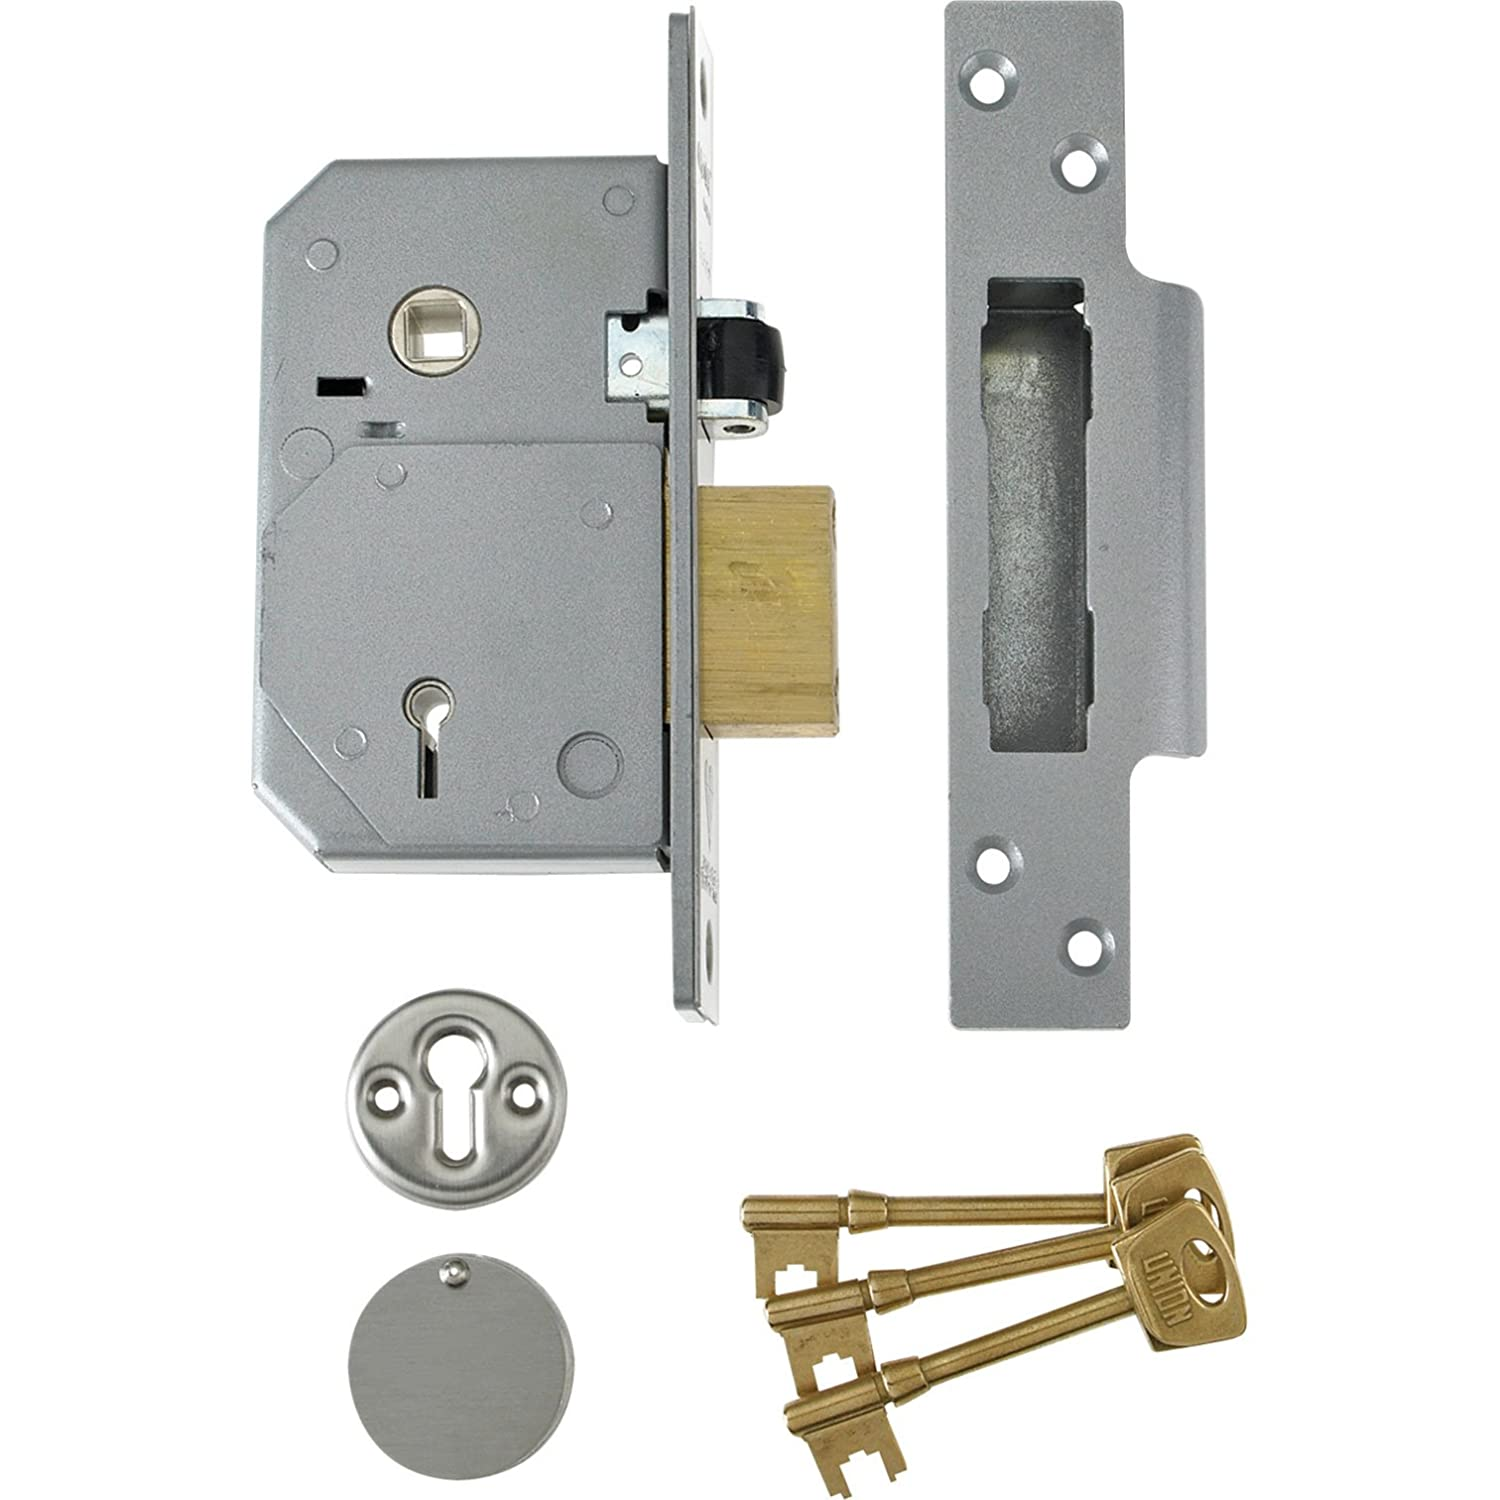 WAFU Wireless Remote Control Lock Invisible Stealthy Remote Lock The Best Anti-theft Lock with 4Keysgold^^^gold